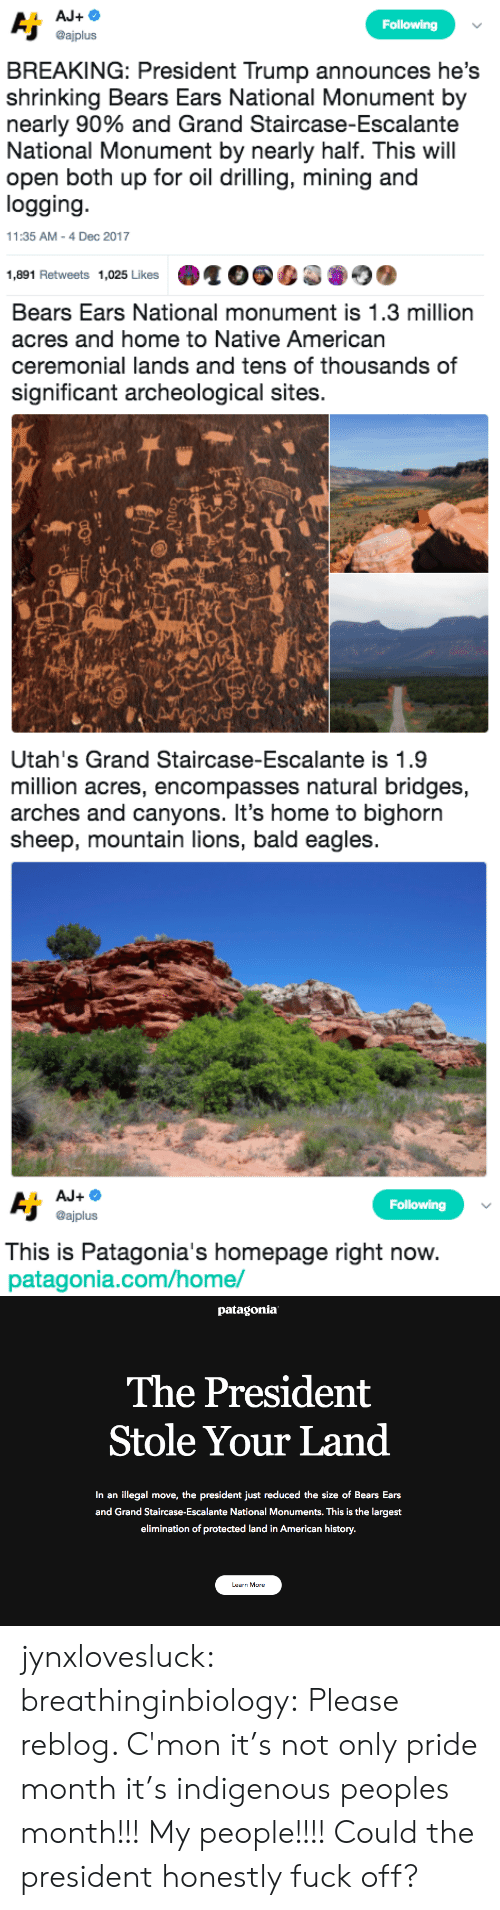 bald: Following  @ajplus  BREAKING: President Trump announces he's  shrinking Bears Ears National Monument by  nearly 90% and Grand Staircase-Escalante  National Monument by nearly half. This will  open both up for oil drilling, mining and  logging  11:35 AM-4 Dec 2017  1,891 Retweets 1,025 Likes   Bears Ears National monument is 1.3 million  acres and home to Native American  ceremonial lands and tens of thousands of  significant archeological sites.  sh   Utah's Grand Staircase-Escalante is 1.9  million acres, encompasses natural bridges,  arches and canyons. It's home to bighorn  sheep, mountain lions, bald eagles   Following  @ajplus  This is Patagonia's homepage right now  patagonia.com/home/   patagonia  The President  Stole Your Land  In an illegal move, the president just reduced the size of Bears Ears  and Grand Staircase-Escalante National Monuments. This is the largest  elimination of protected land in American history.  Learn More jynxlovesluck:  breathinginbiology: Please reblog.   C'mon it's not only pride month it's indigenous peoples month!!! My people!!!! Could the president honestly fuck off?